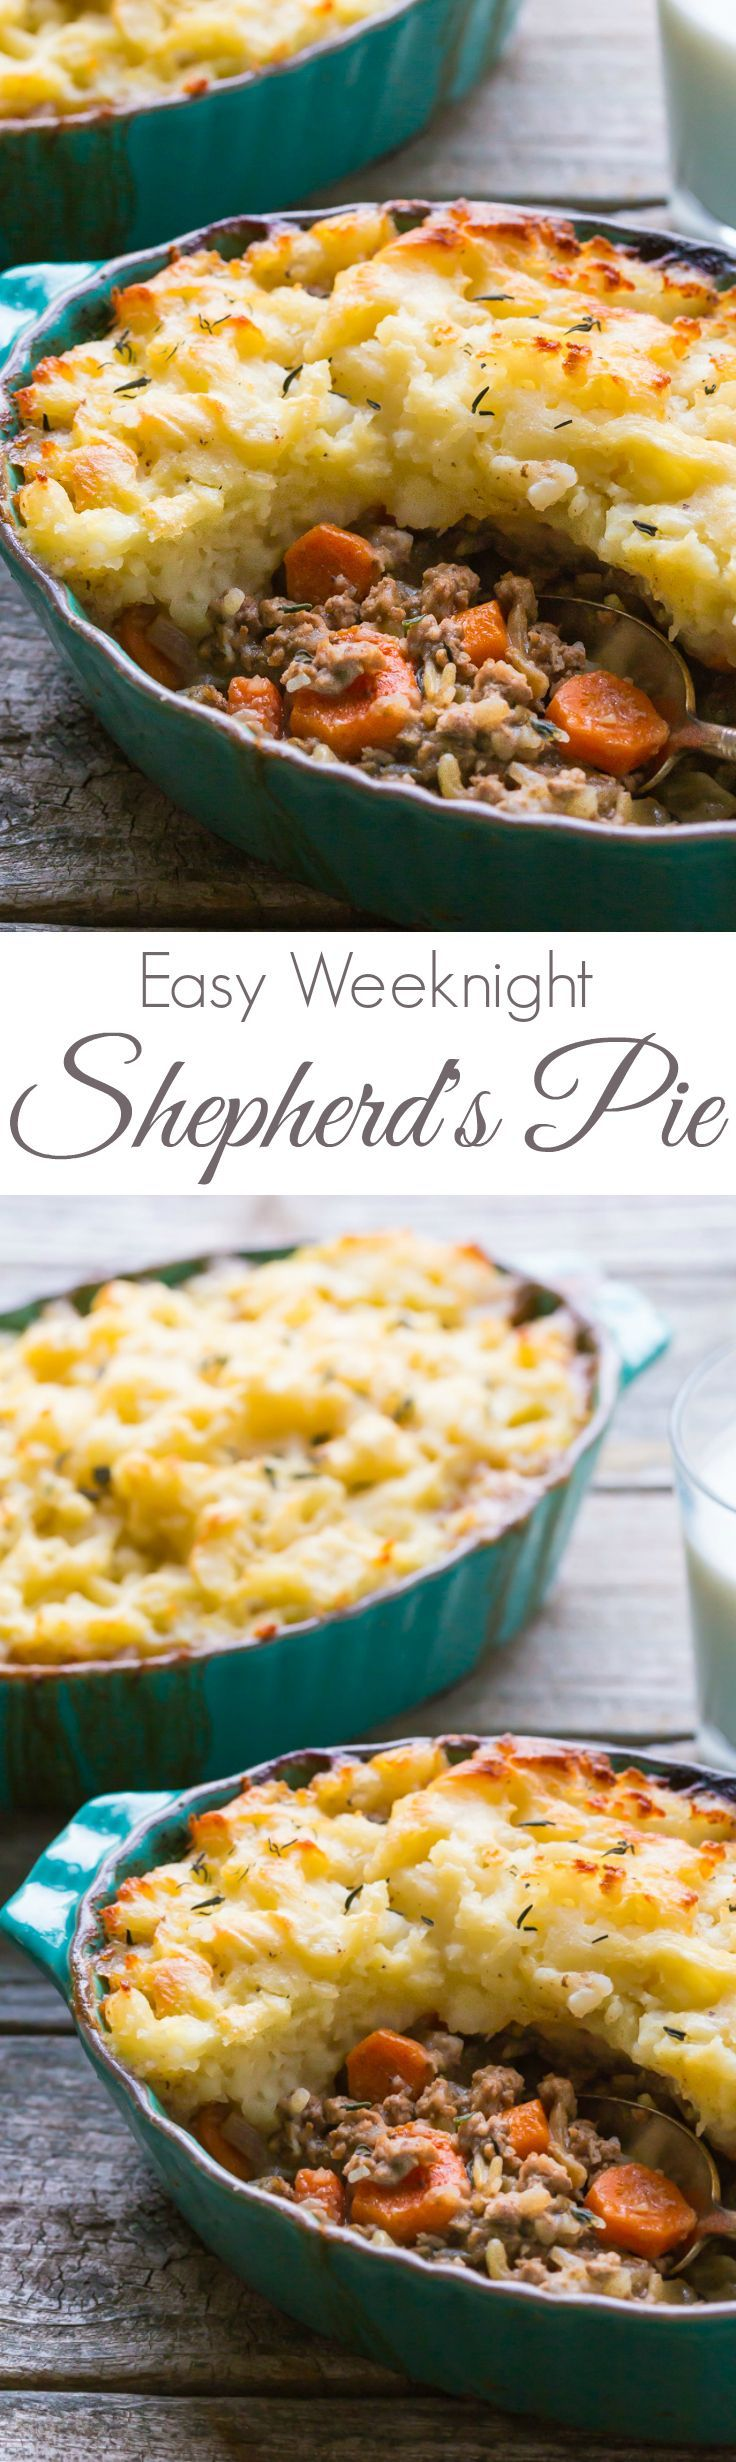 Easy Shepherds Pie Dairy Free Recipes Recipes Food